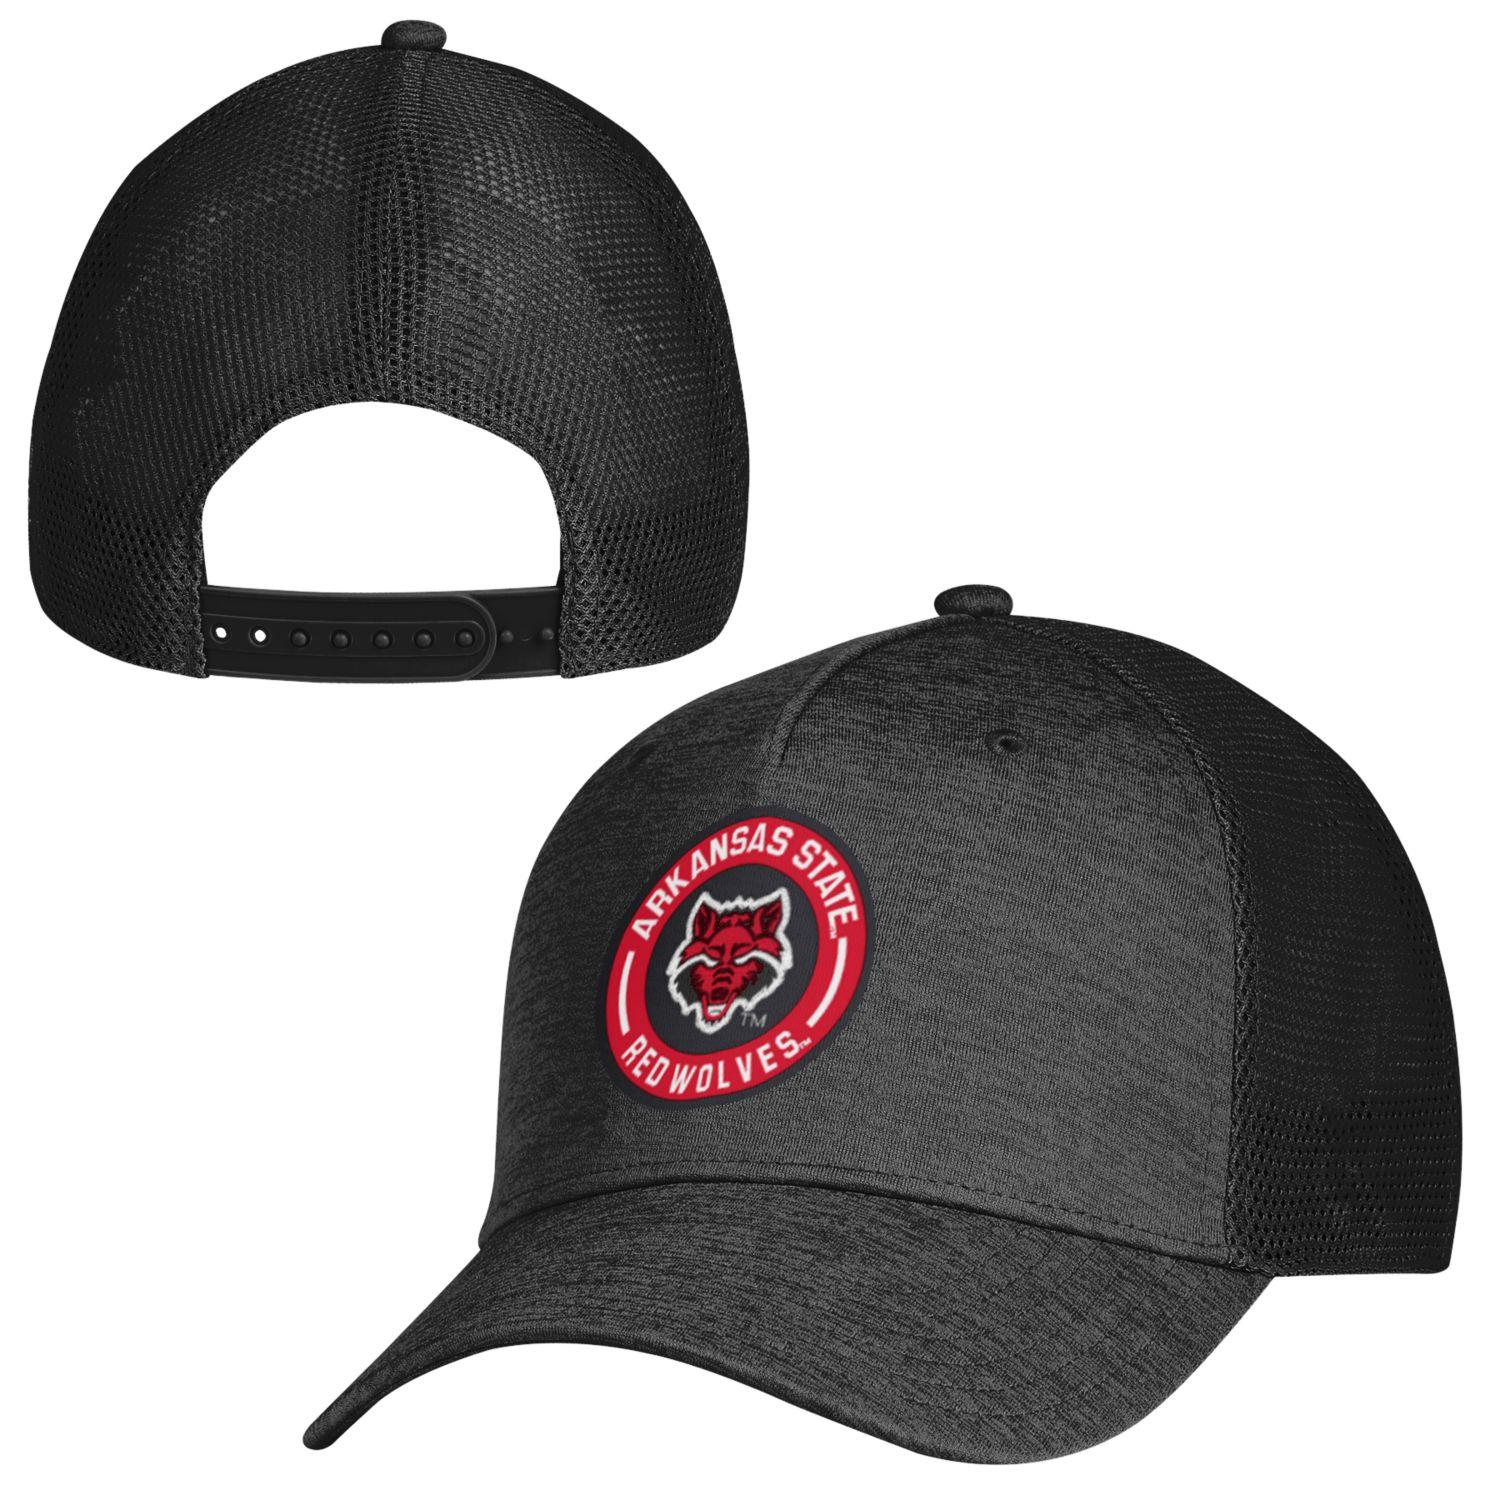 Arkansas State Twist Closer 3.0 Trucker Snapback